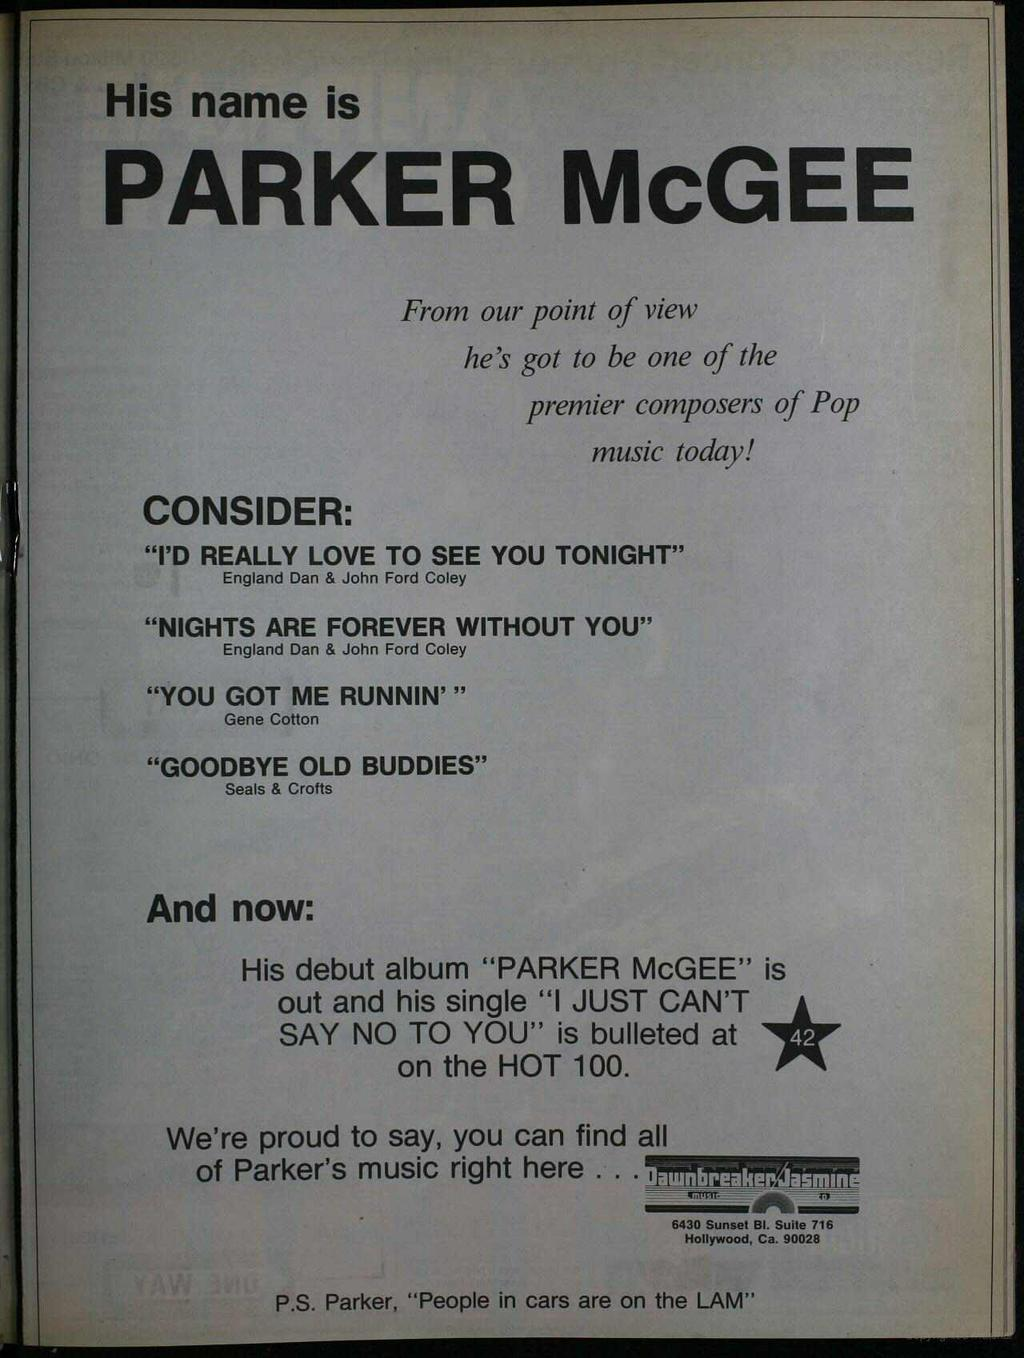 His name is PARKER McGEE CONSDER: From our point of view he's got to be one of the premier composers of Pop music today!